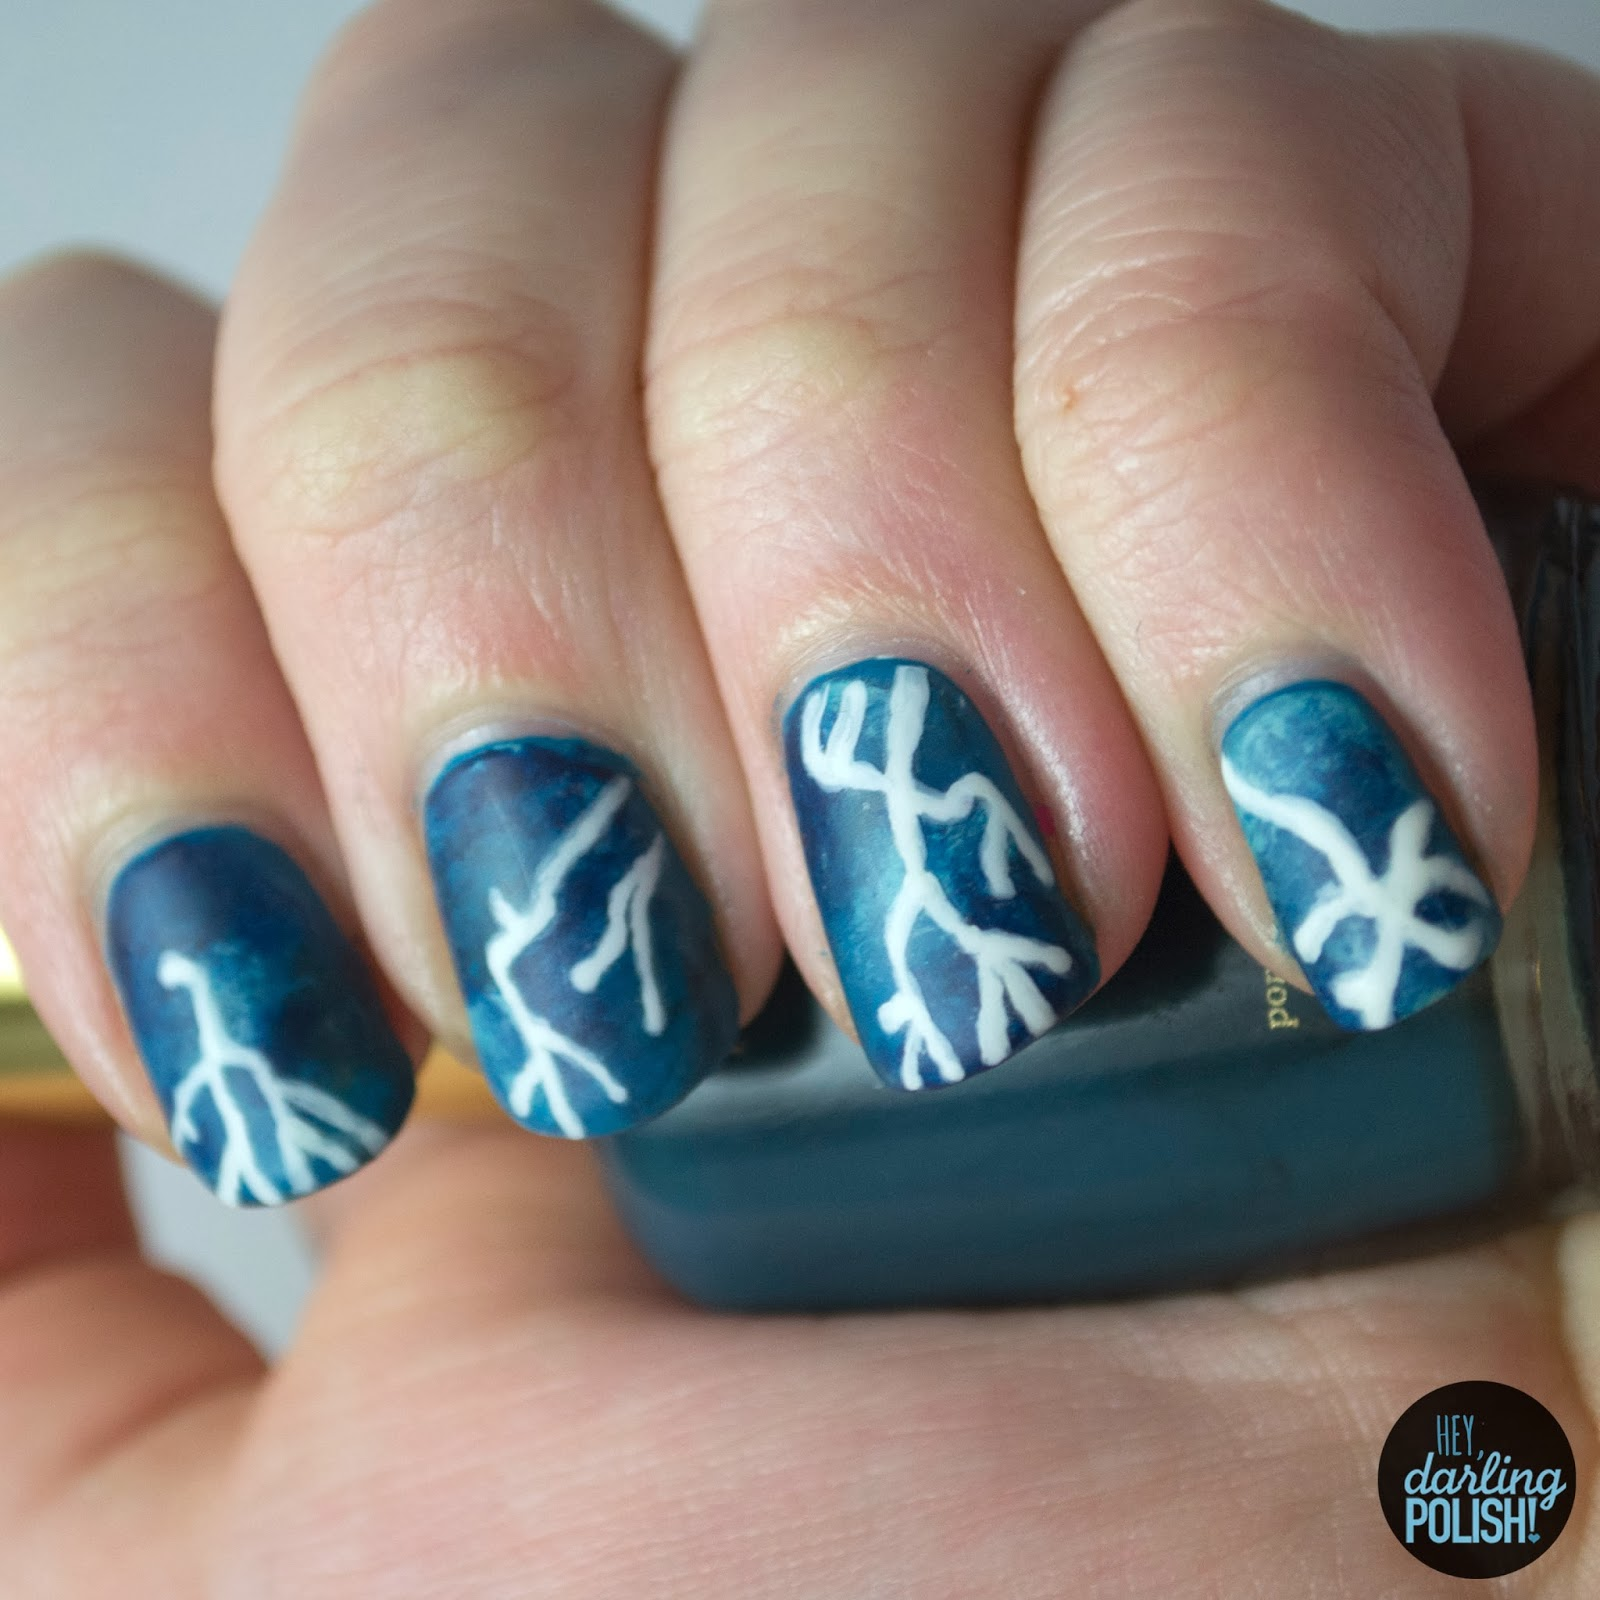 nails, nail polish, nail art, polish, lightening, weather, fingerfood theme buffet, blue nails, hey darling polish